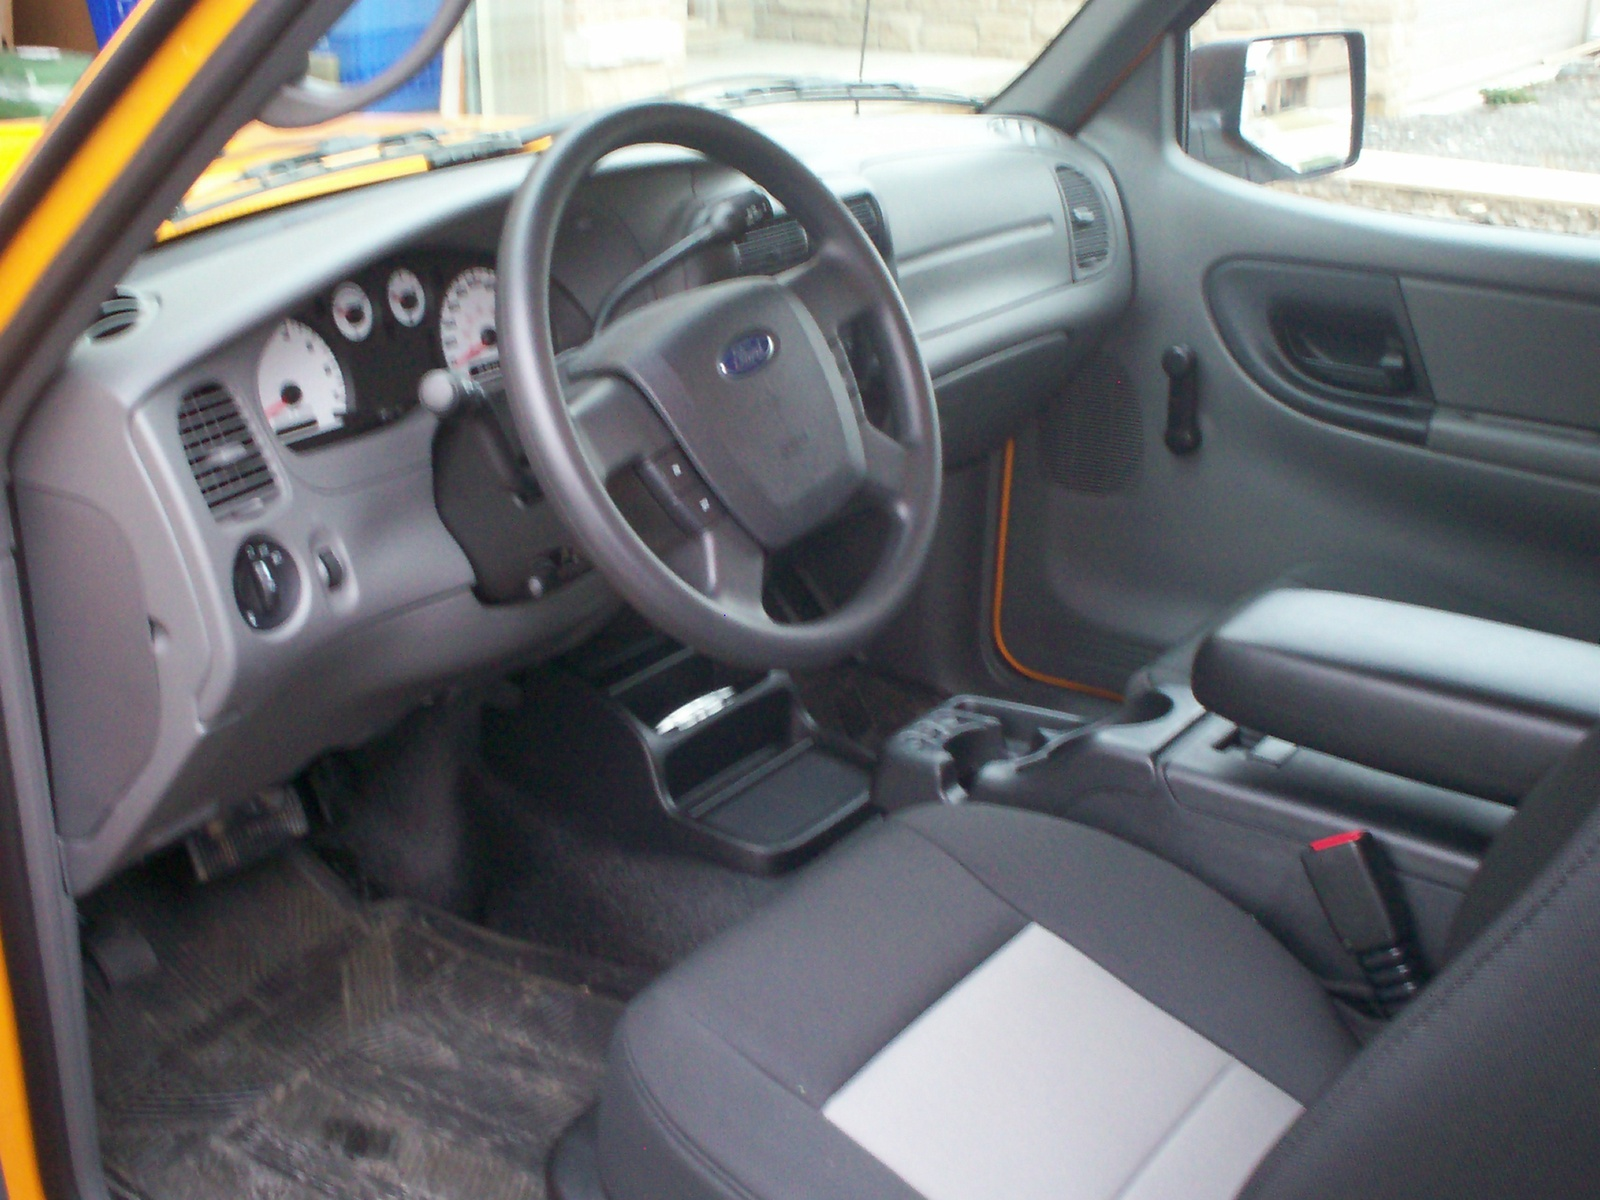 2009 Ford Ranger Interior Images & Pictures - Becuo